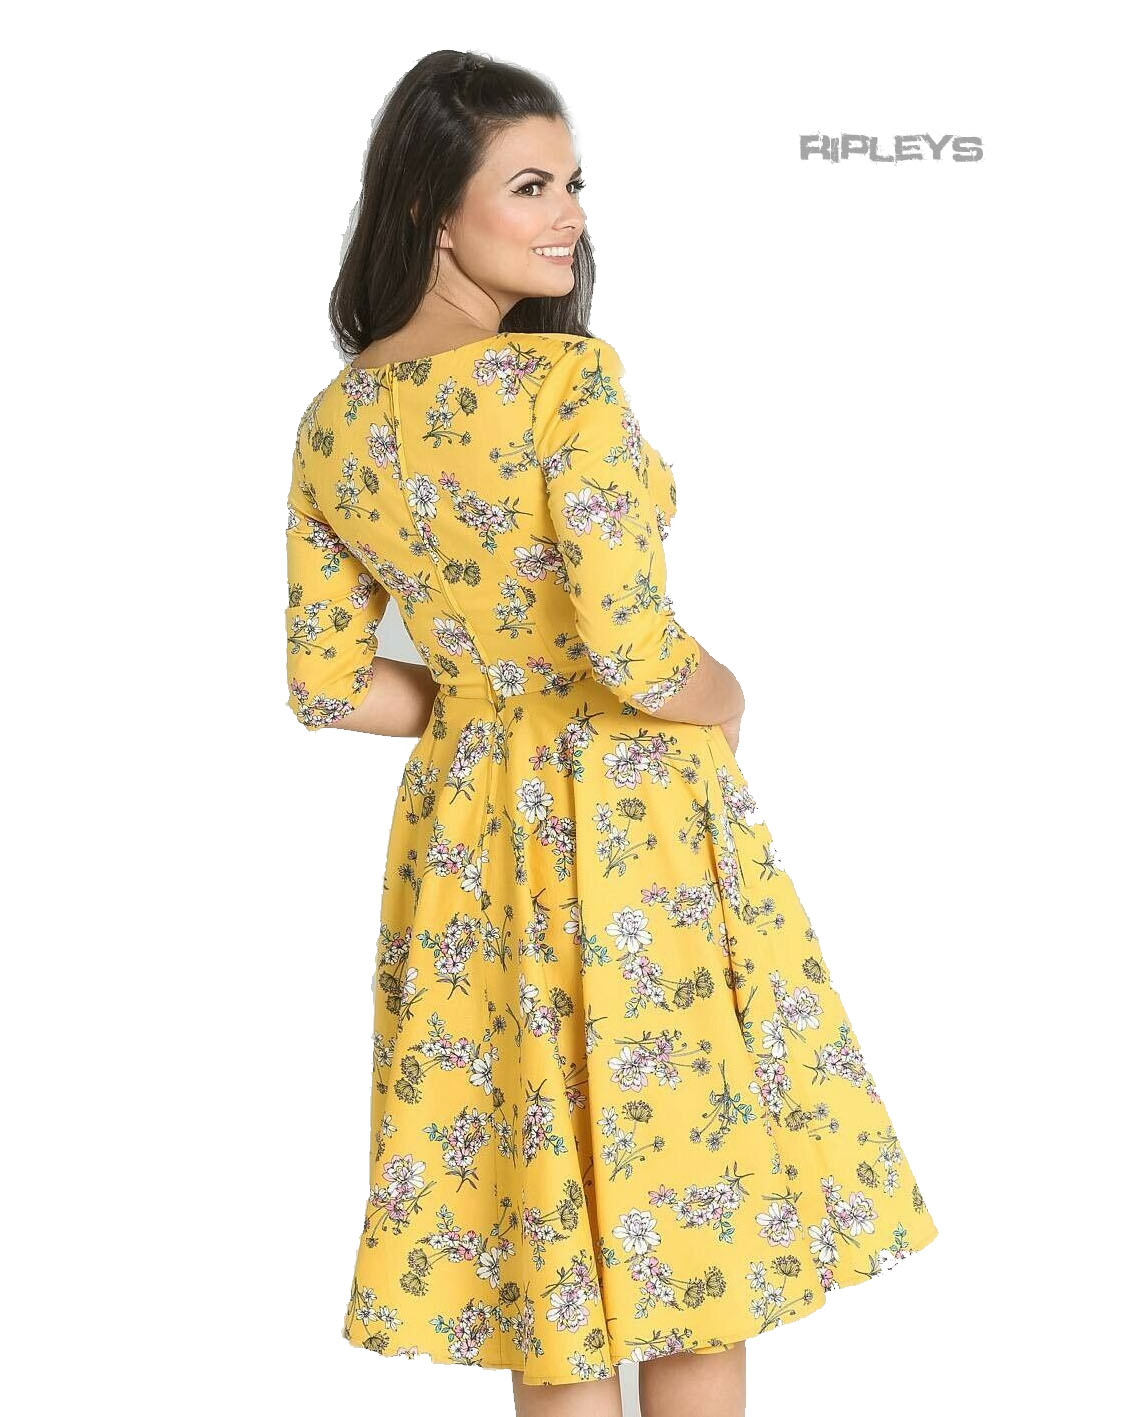 Hell-Bunny-40s-50s-Pin-Up-Vintage-Dress-MURIEL-Flowers-Yellow-All-Sizes thumbnail 16